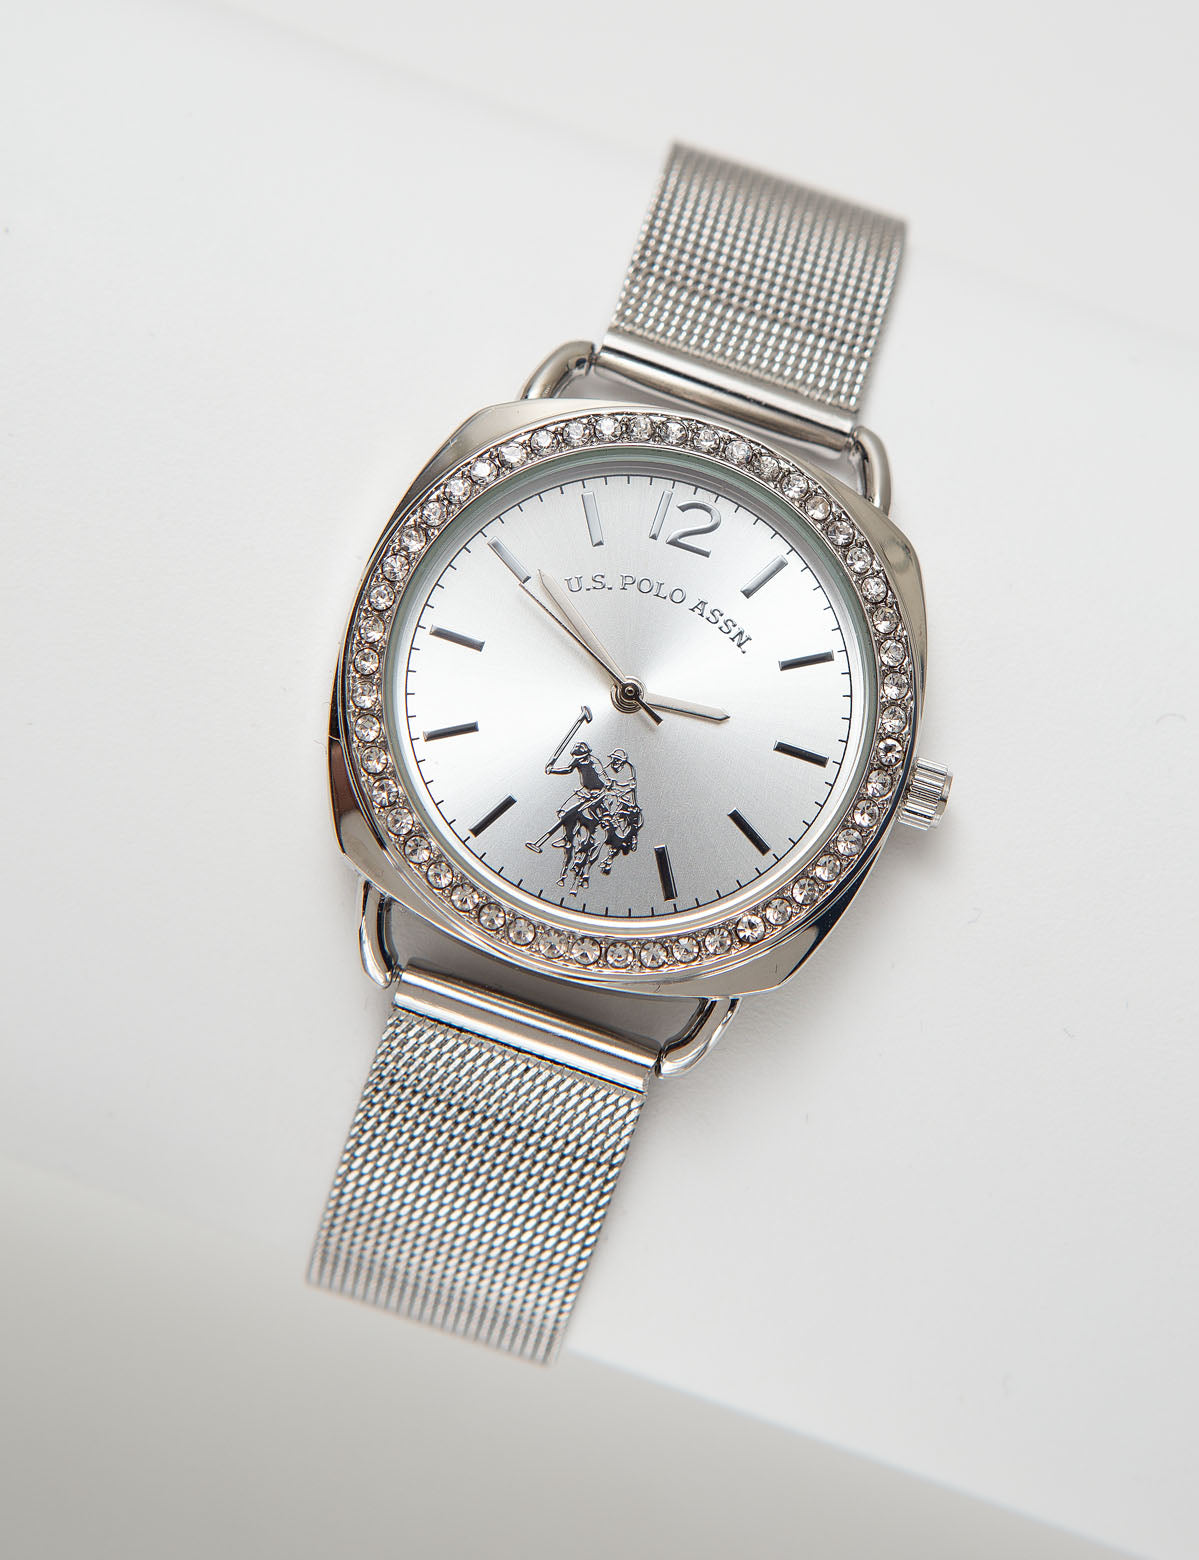 Ladies Silvertone Mesh Watch with Crystal Accents - U.S. Polo Assn.